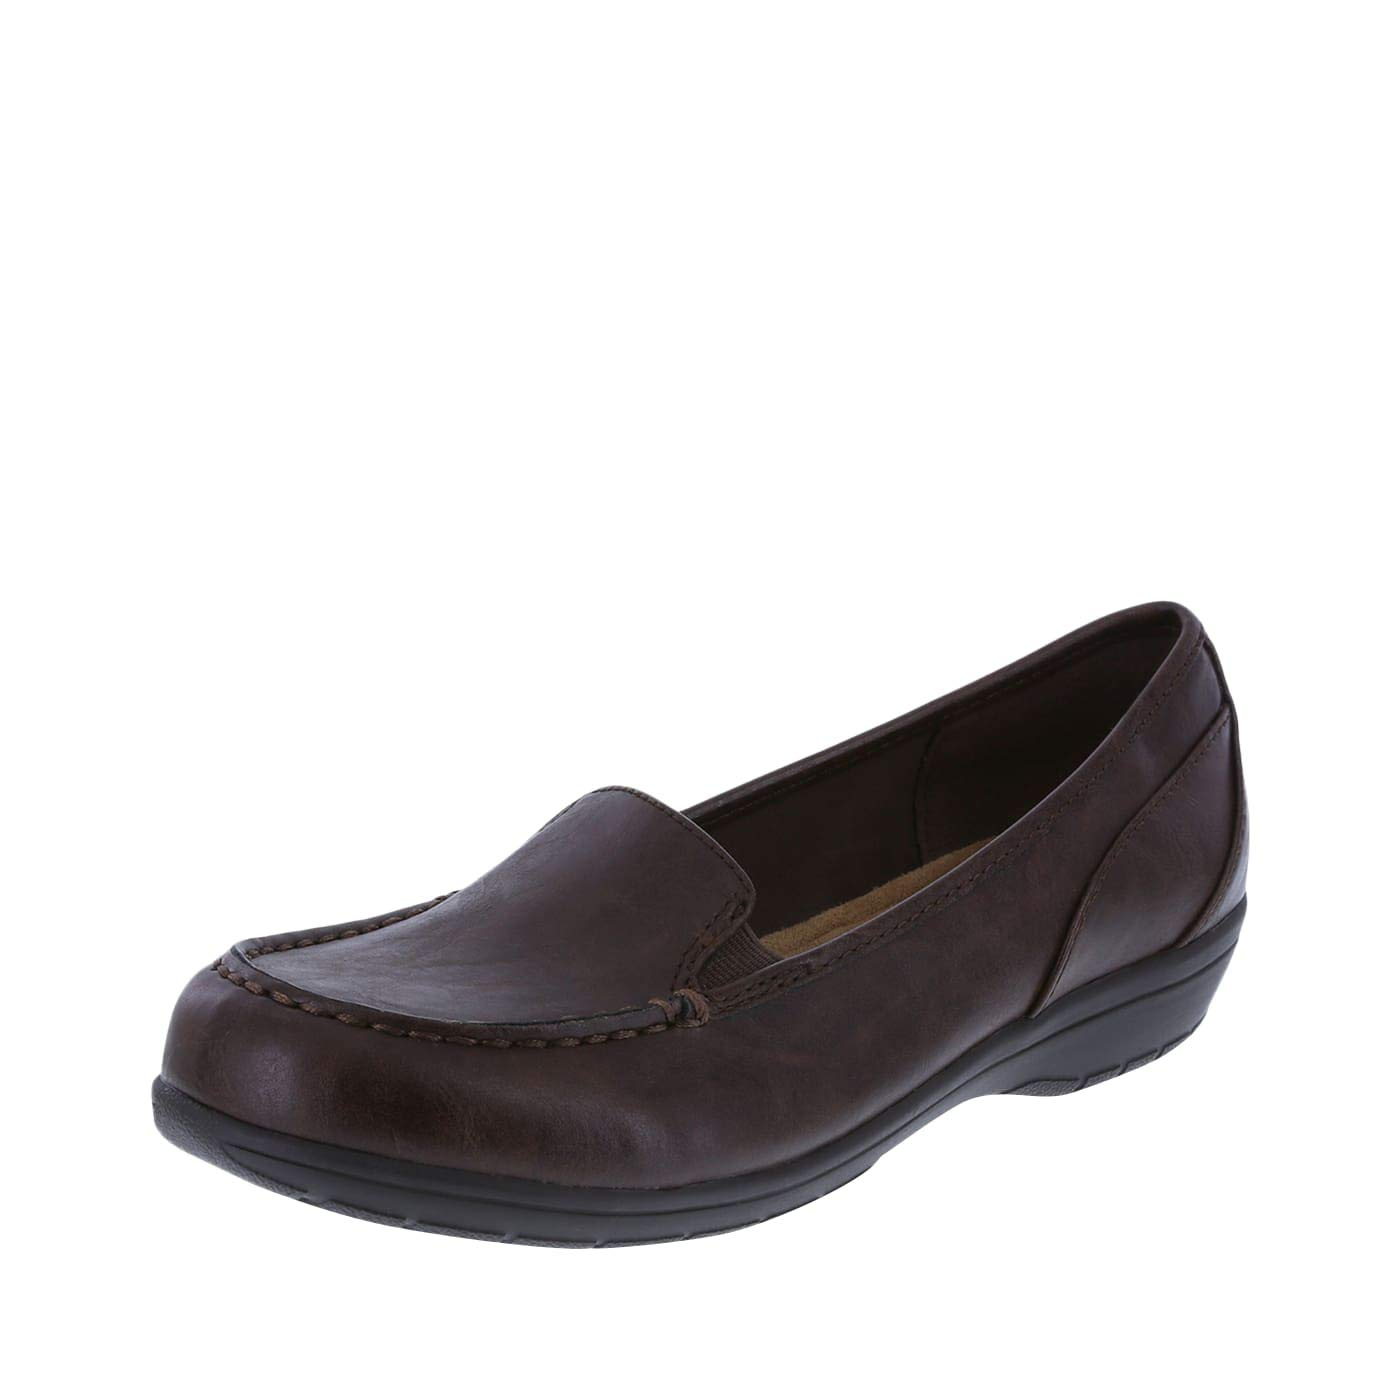 Comfort Plus by Predictions Women's Brown Women's Colby Loafer 5.5 Wide